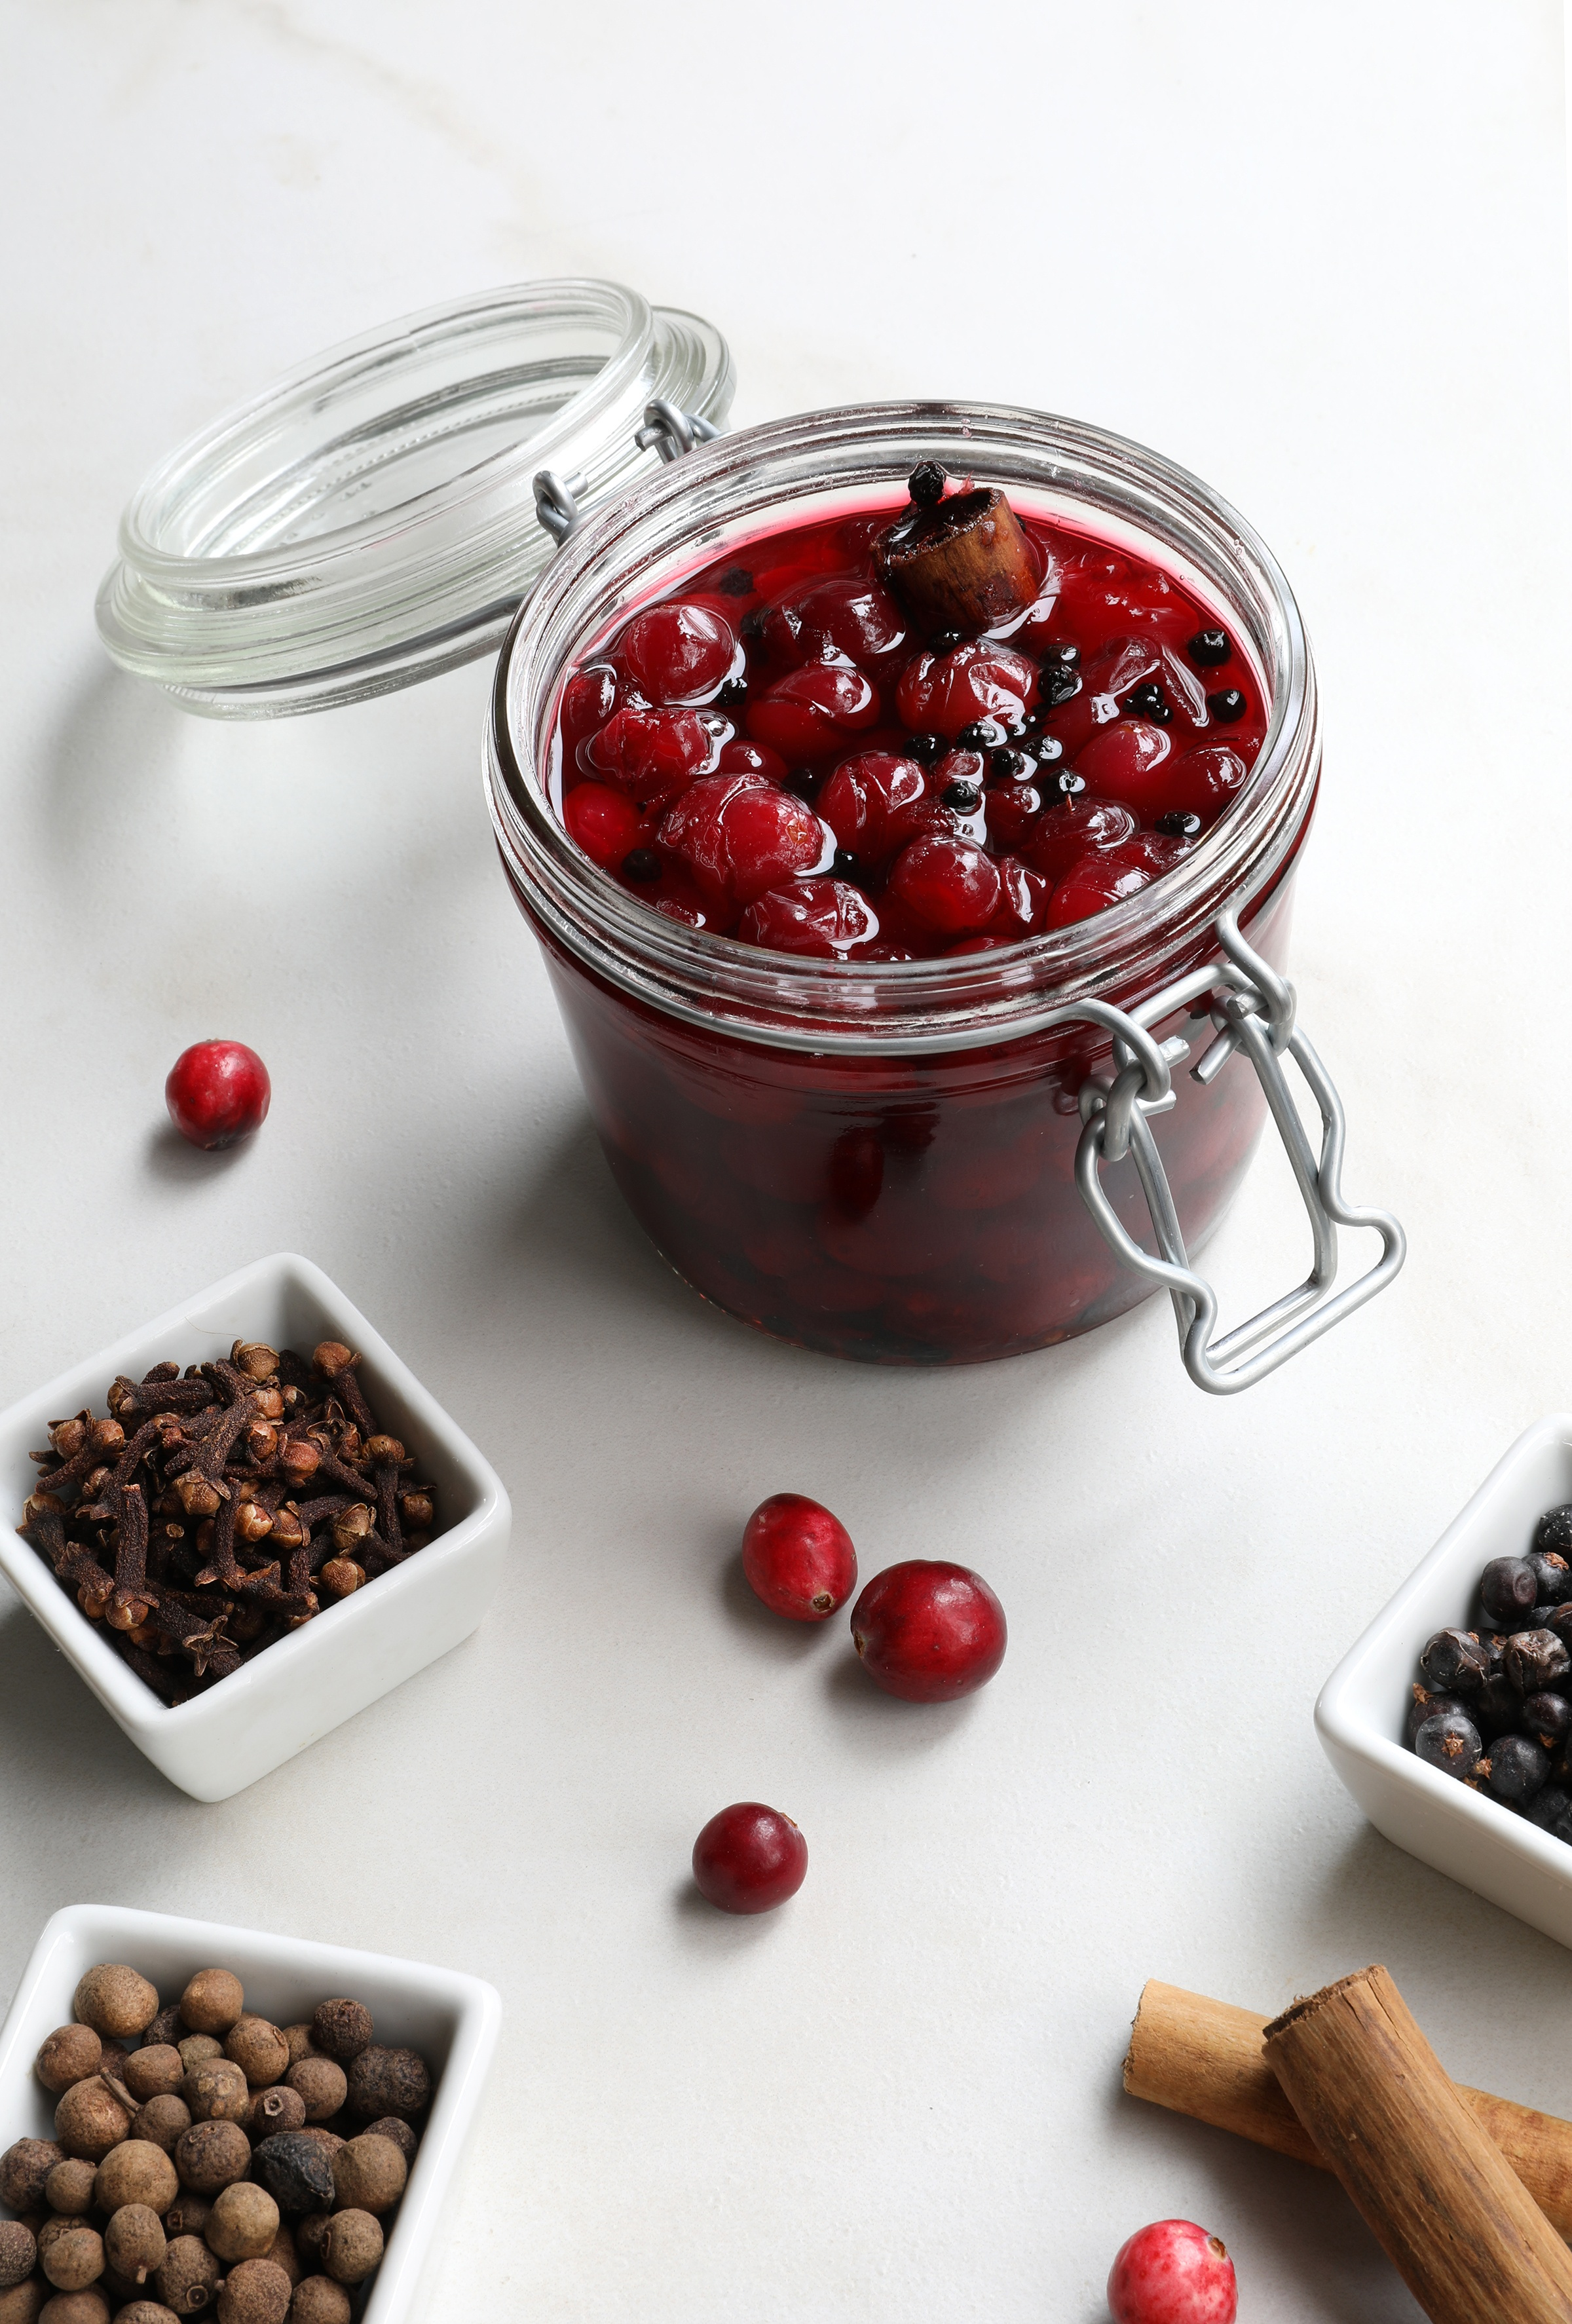 Canning Jar with pickled crannberries inside on counter with dried herbs and spices